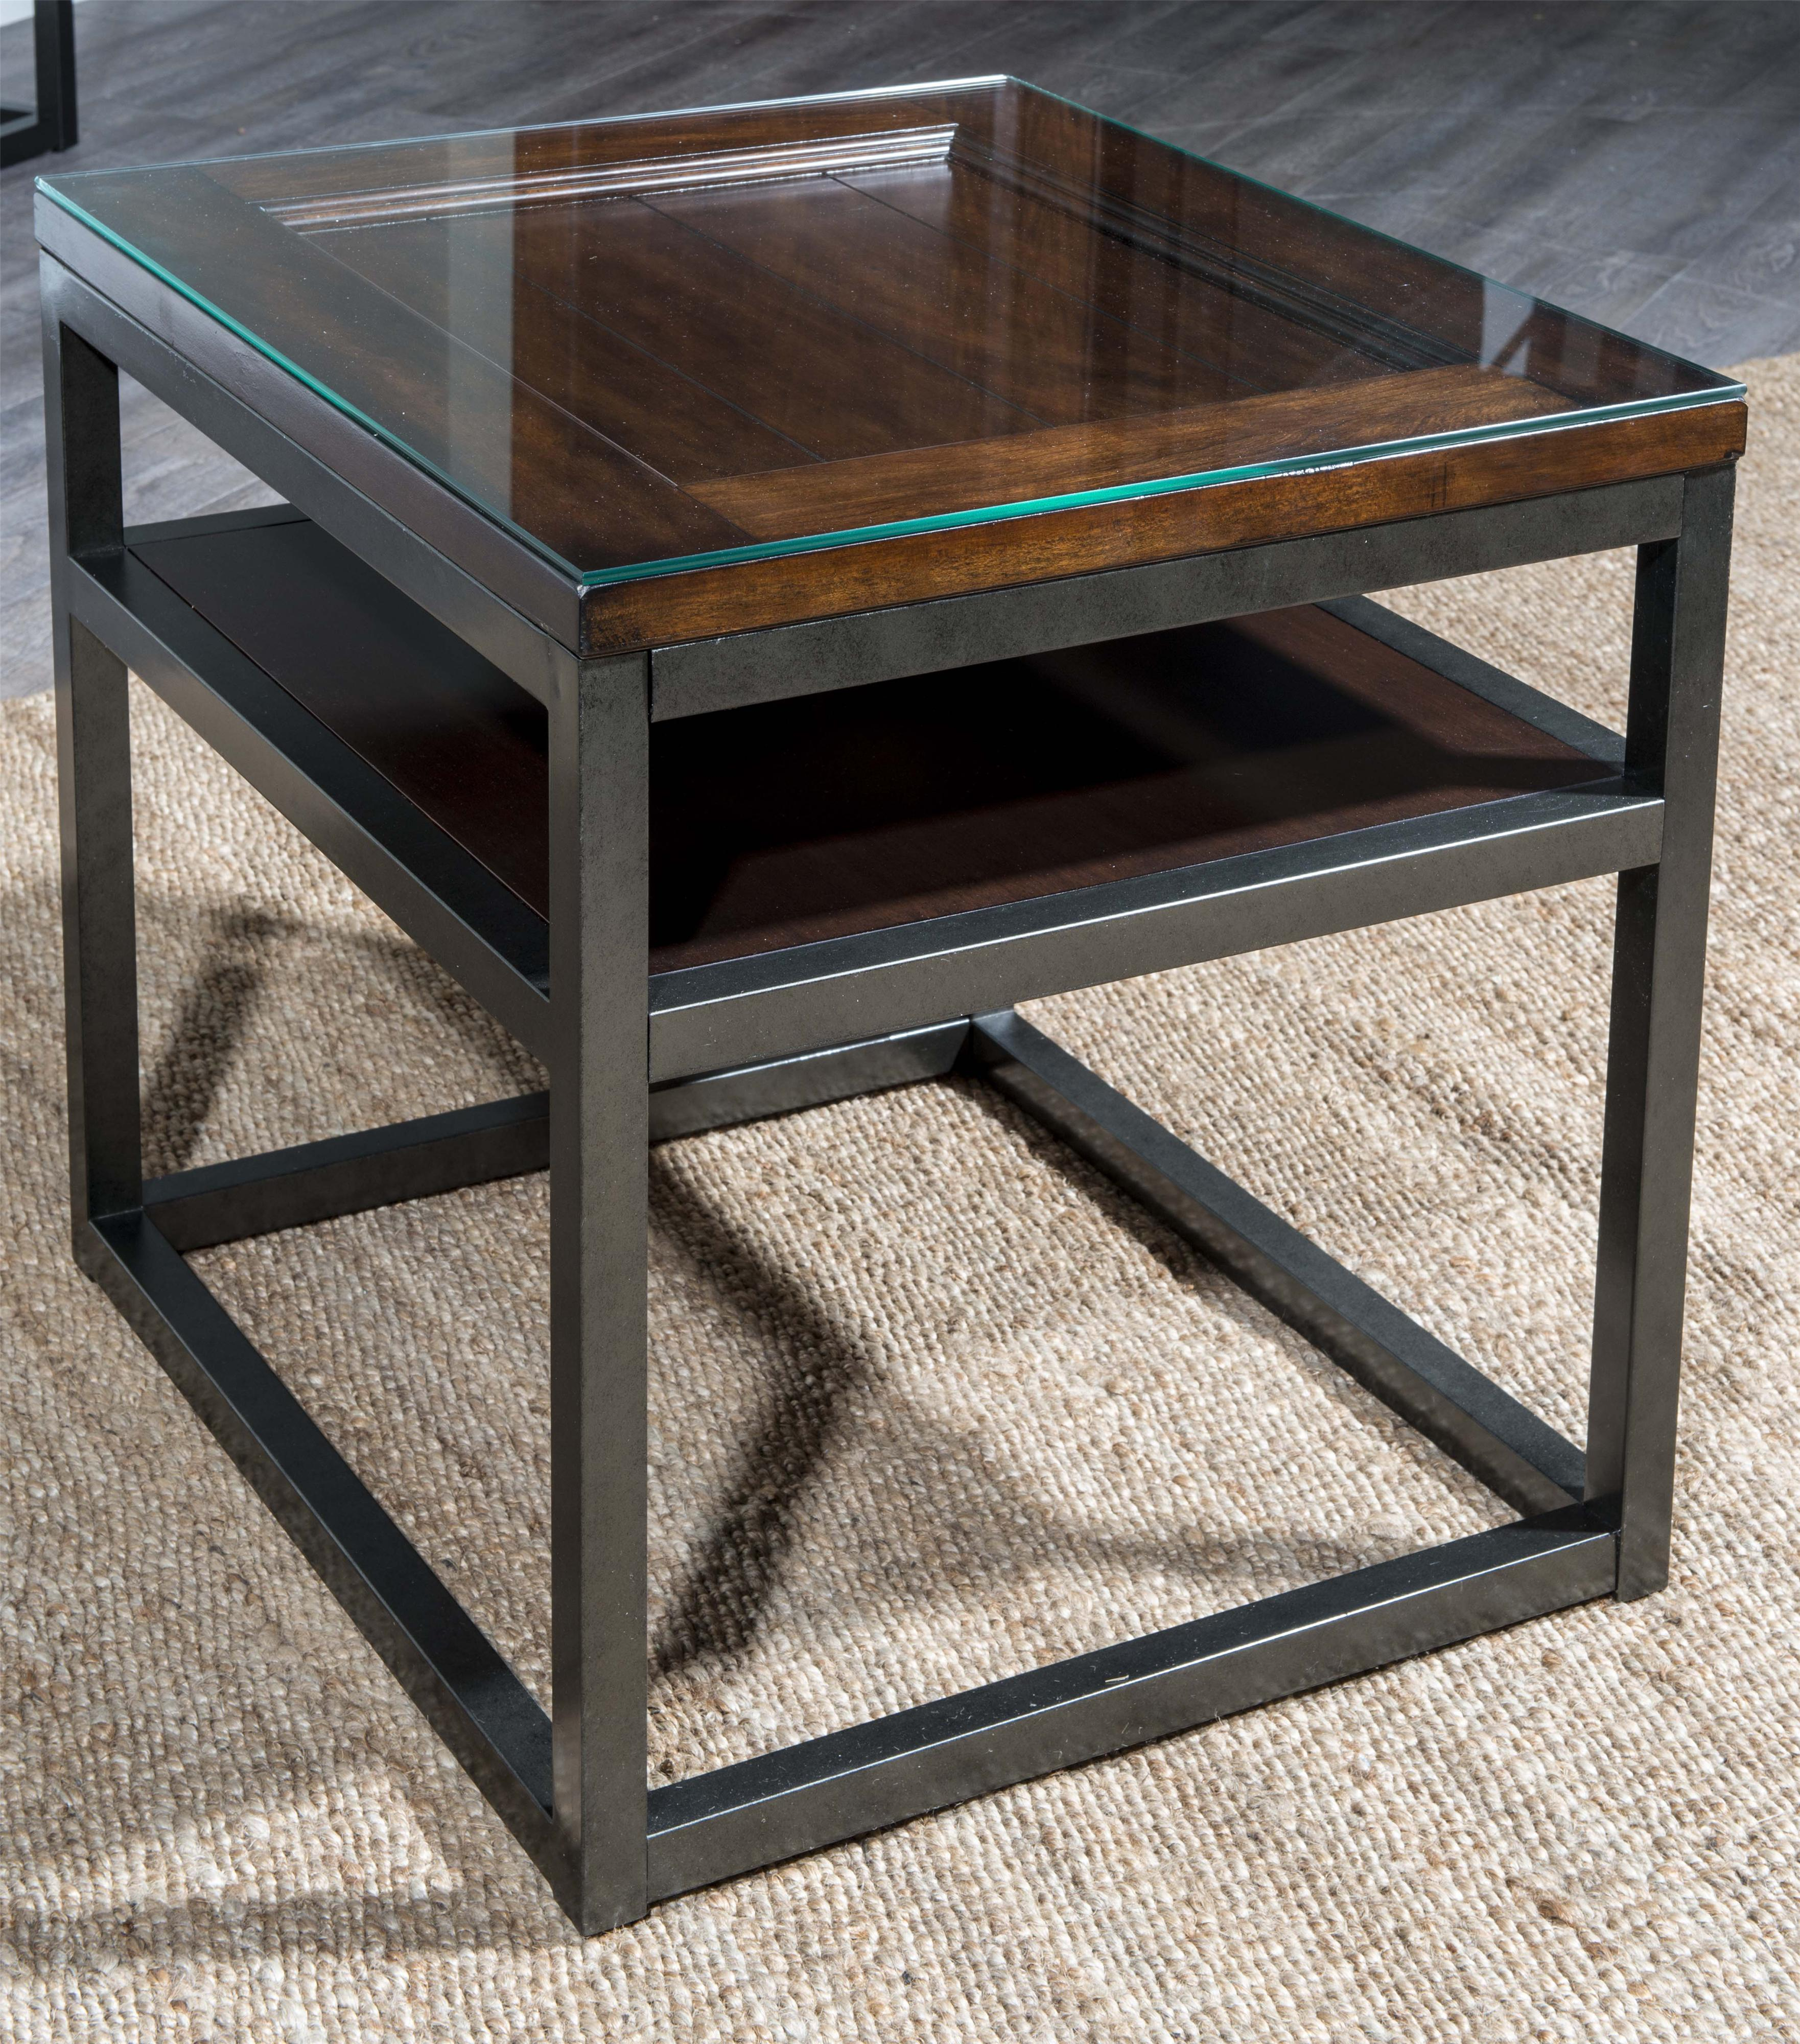 Easton Collection Blue Ridge Foothills-Cherry End Table - Item Number: 426-809 ETBL